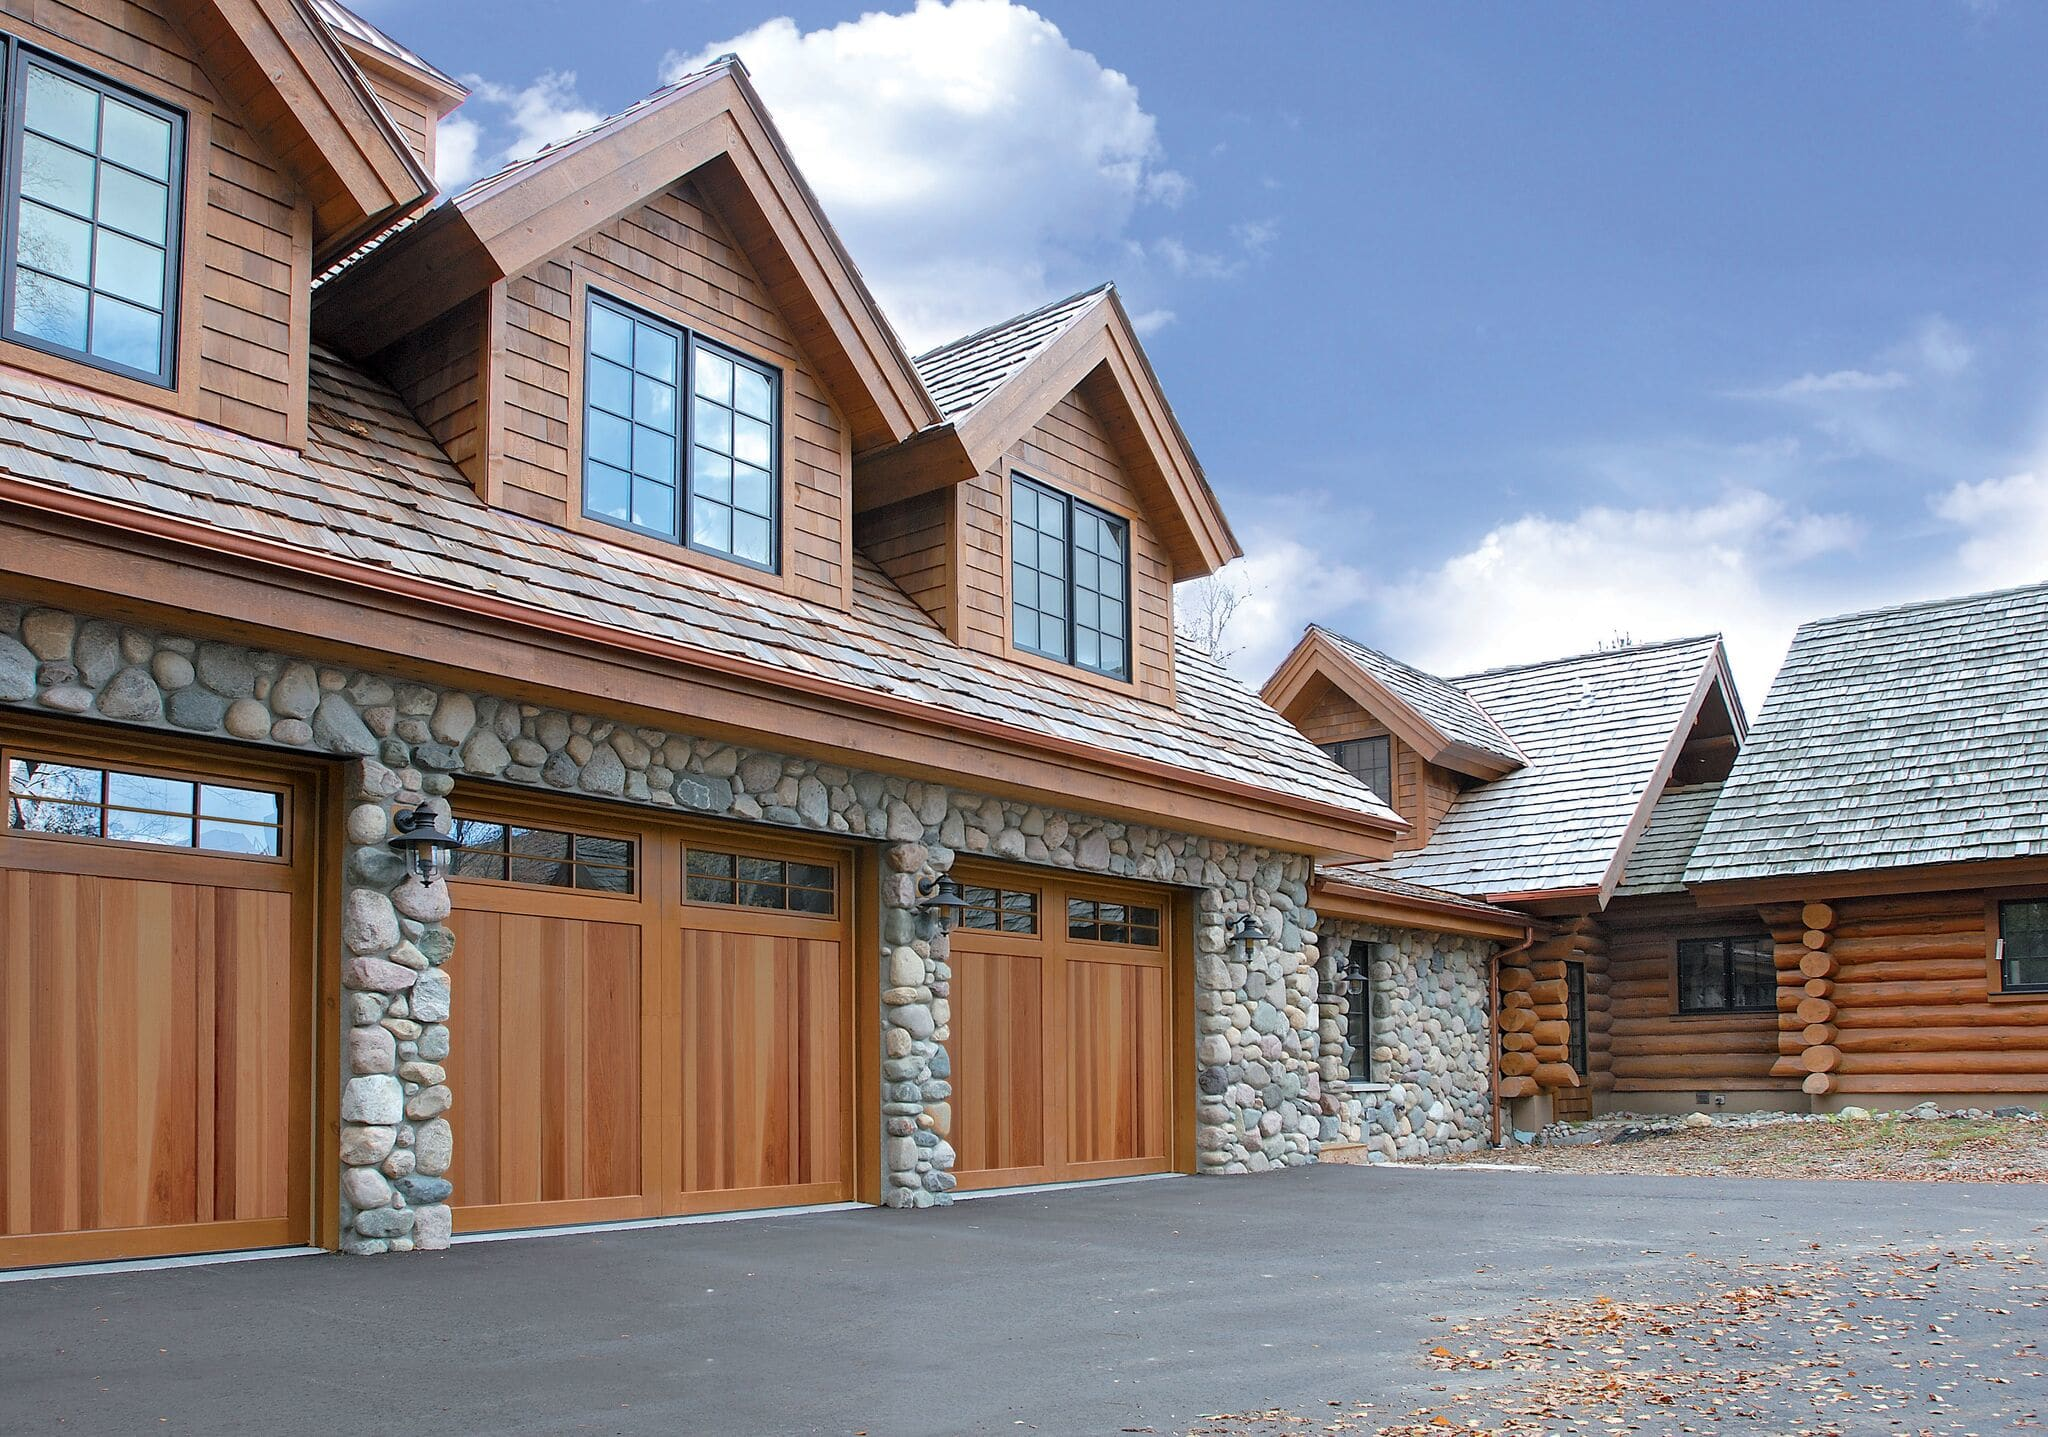 Home Garage Door Repair in Winston Salem